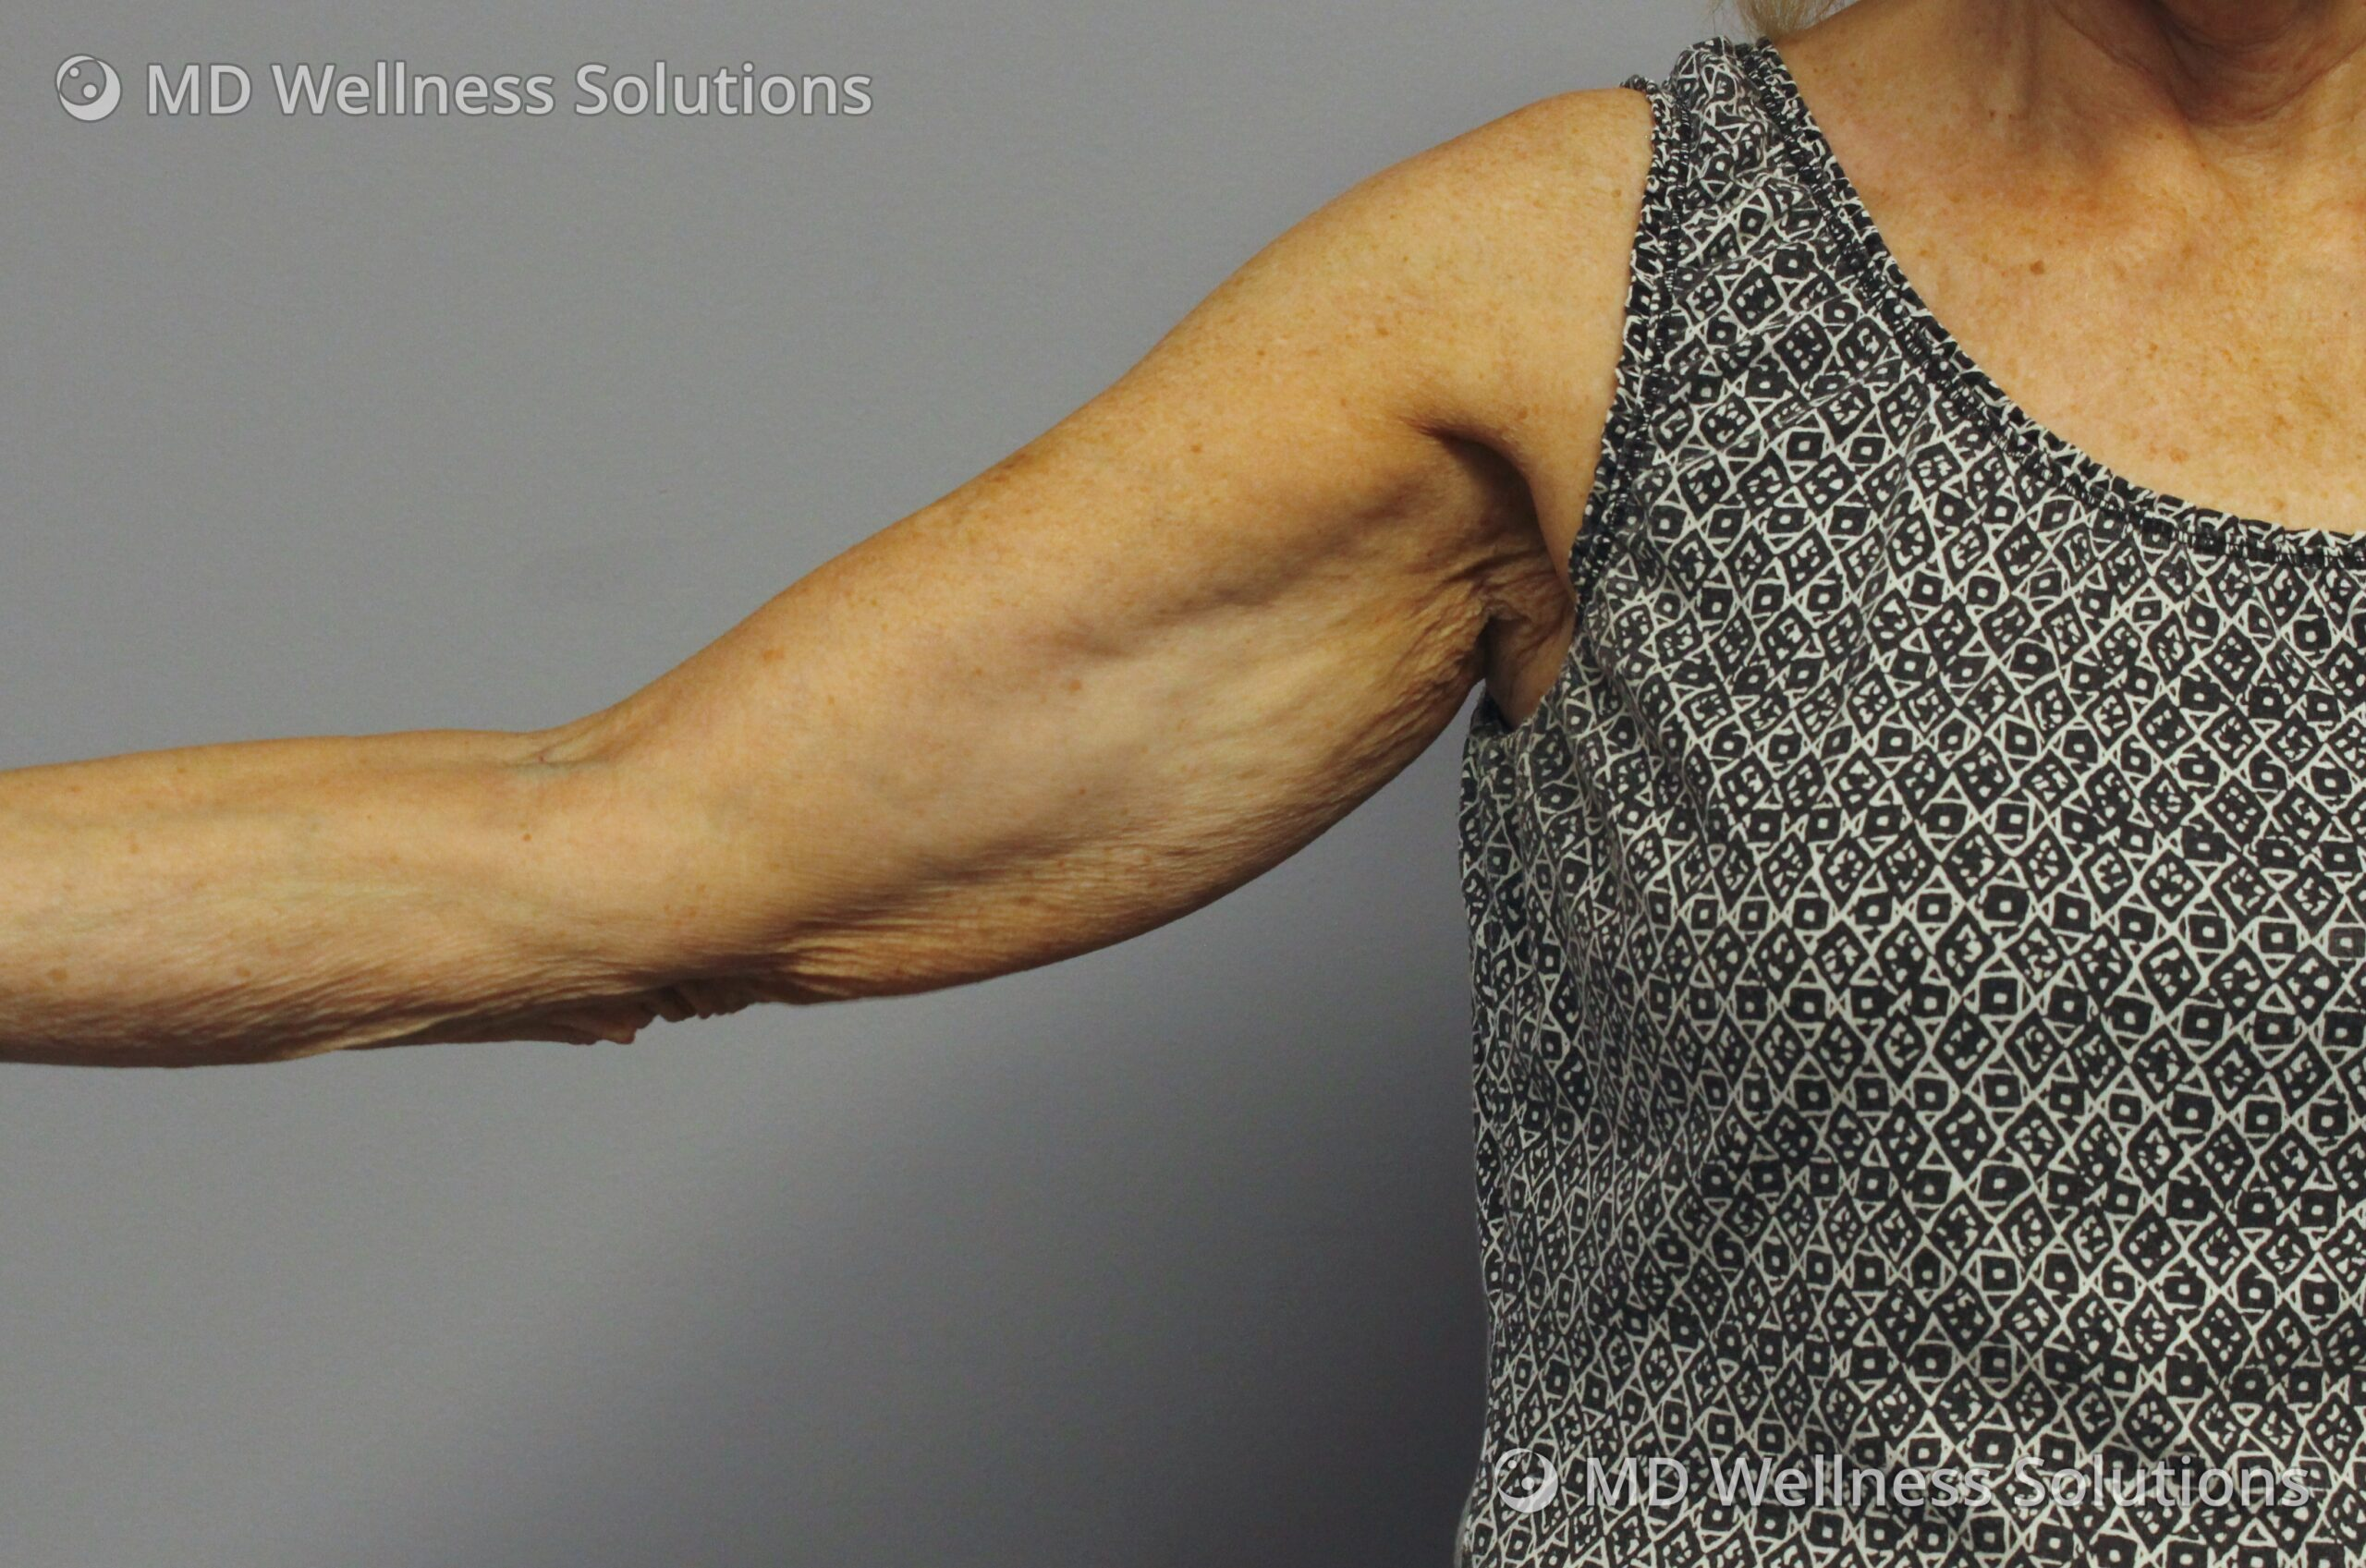 65-74 year old woman after FlexSure body contouring treatment